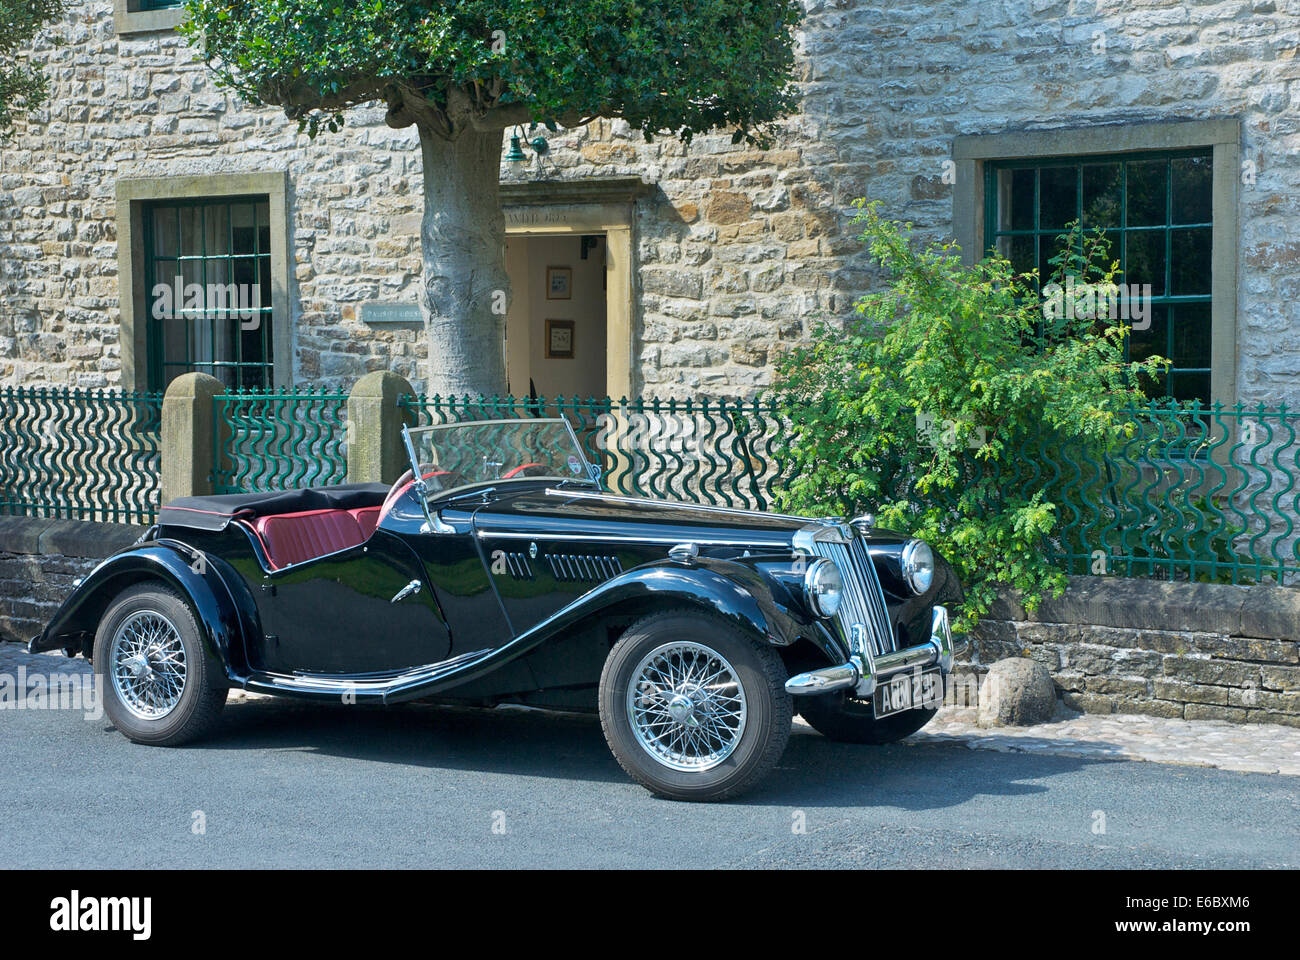 Convertible MG sports car parked outside cottage in the village of Kettlewell, Wharfedale, Yorkshire Dales Nat Park, - Stock Image